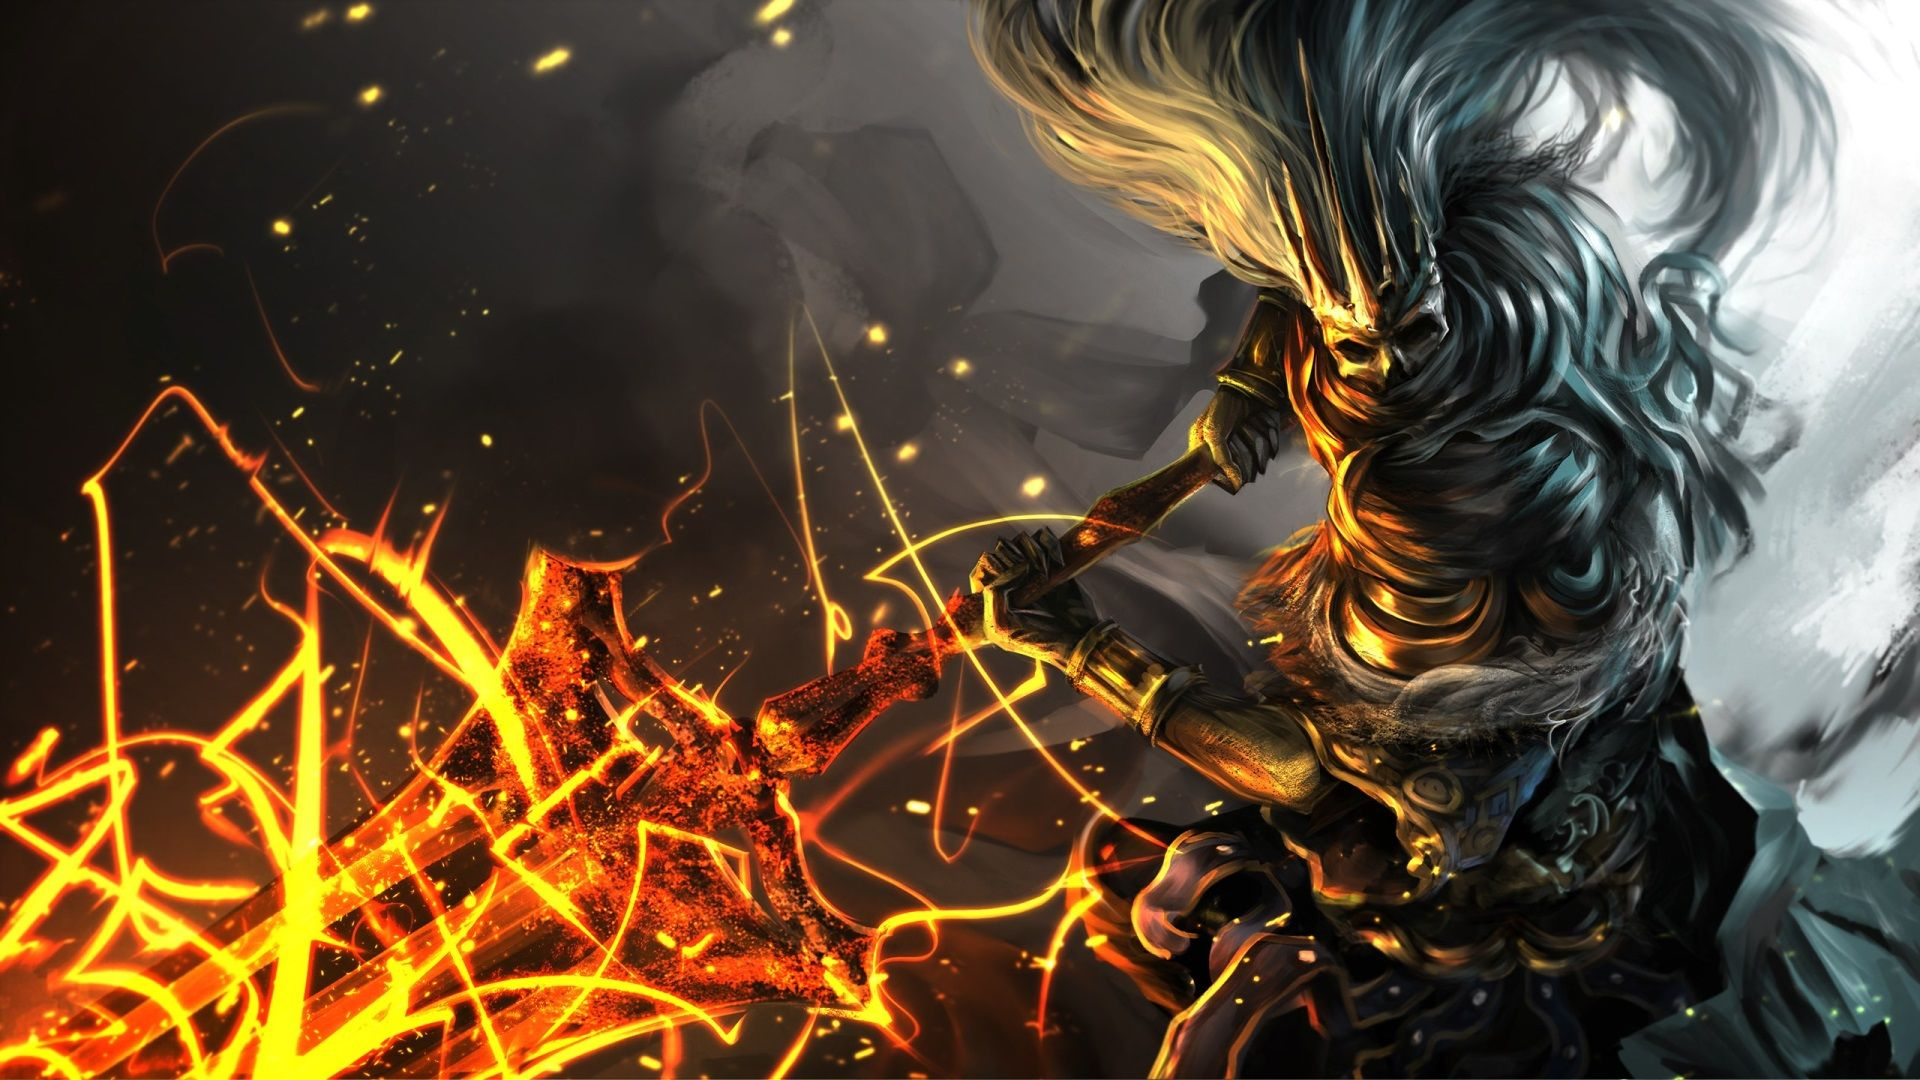 Dark Souls 3 Background 1920x1080 Posted By Sarah Simpson